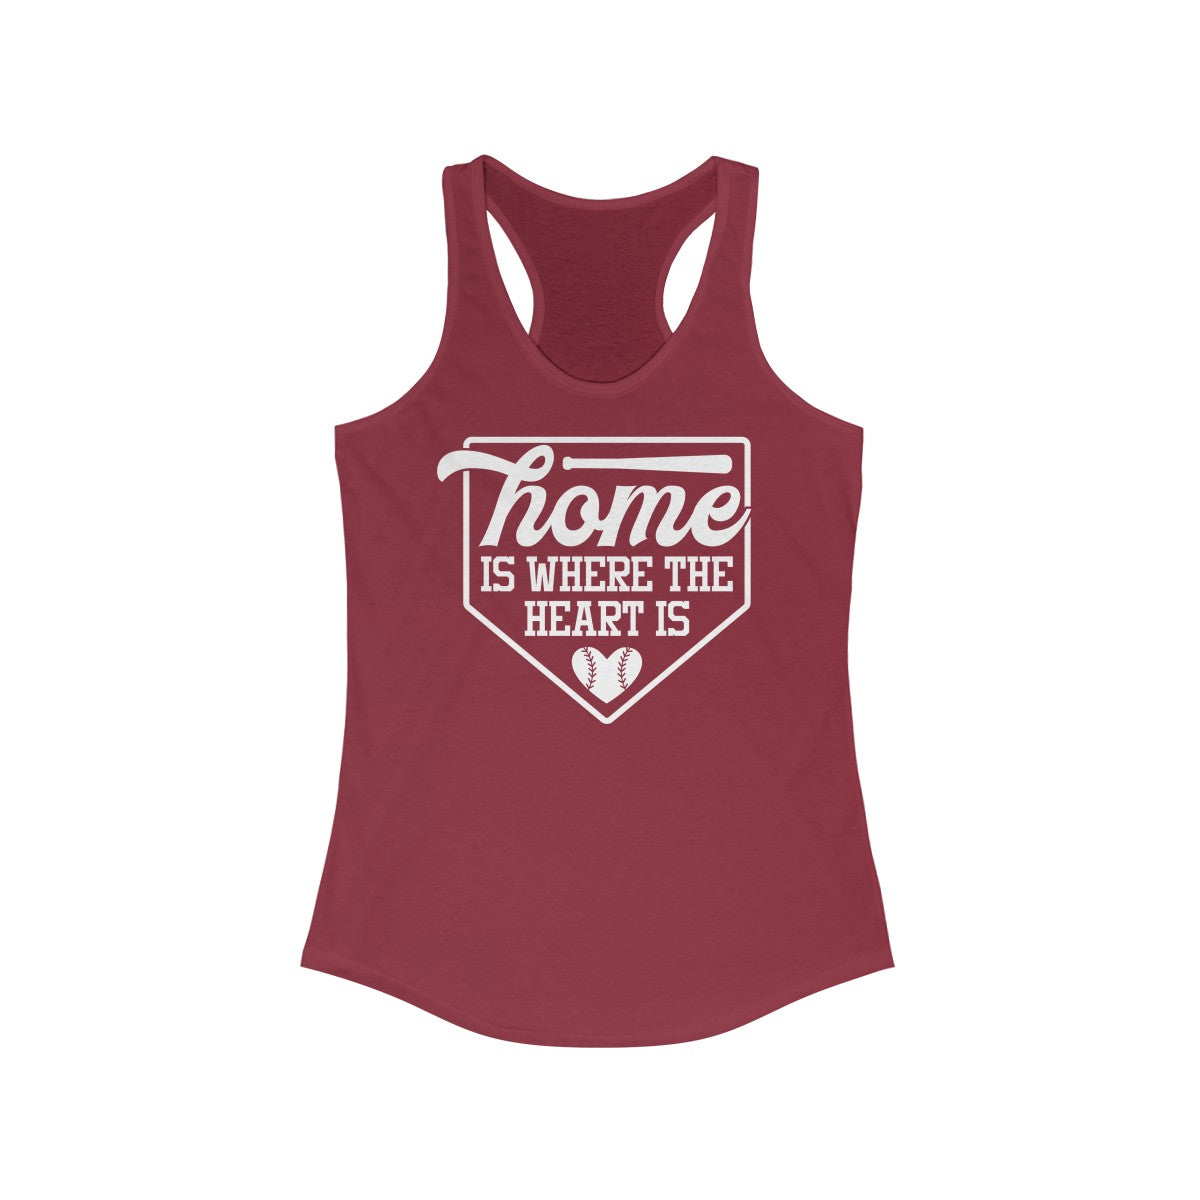 Home is where the Heart Is Women's Ideal Racerback Tank